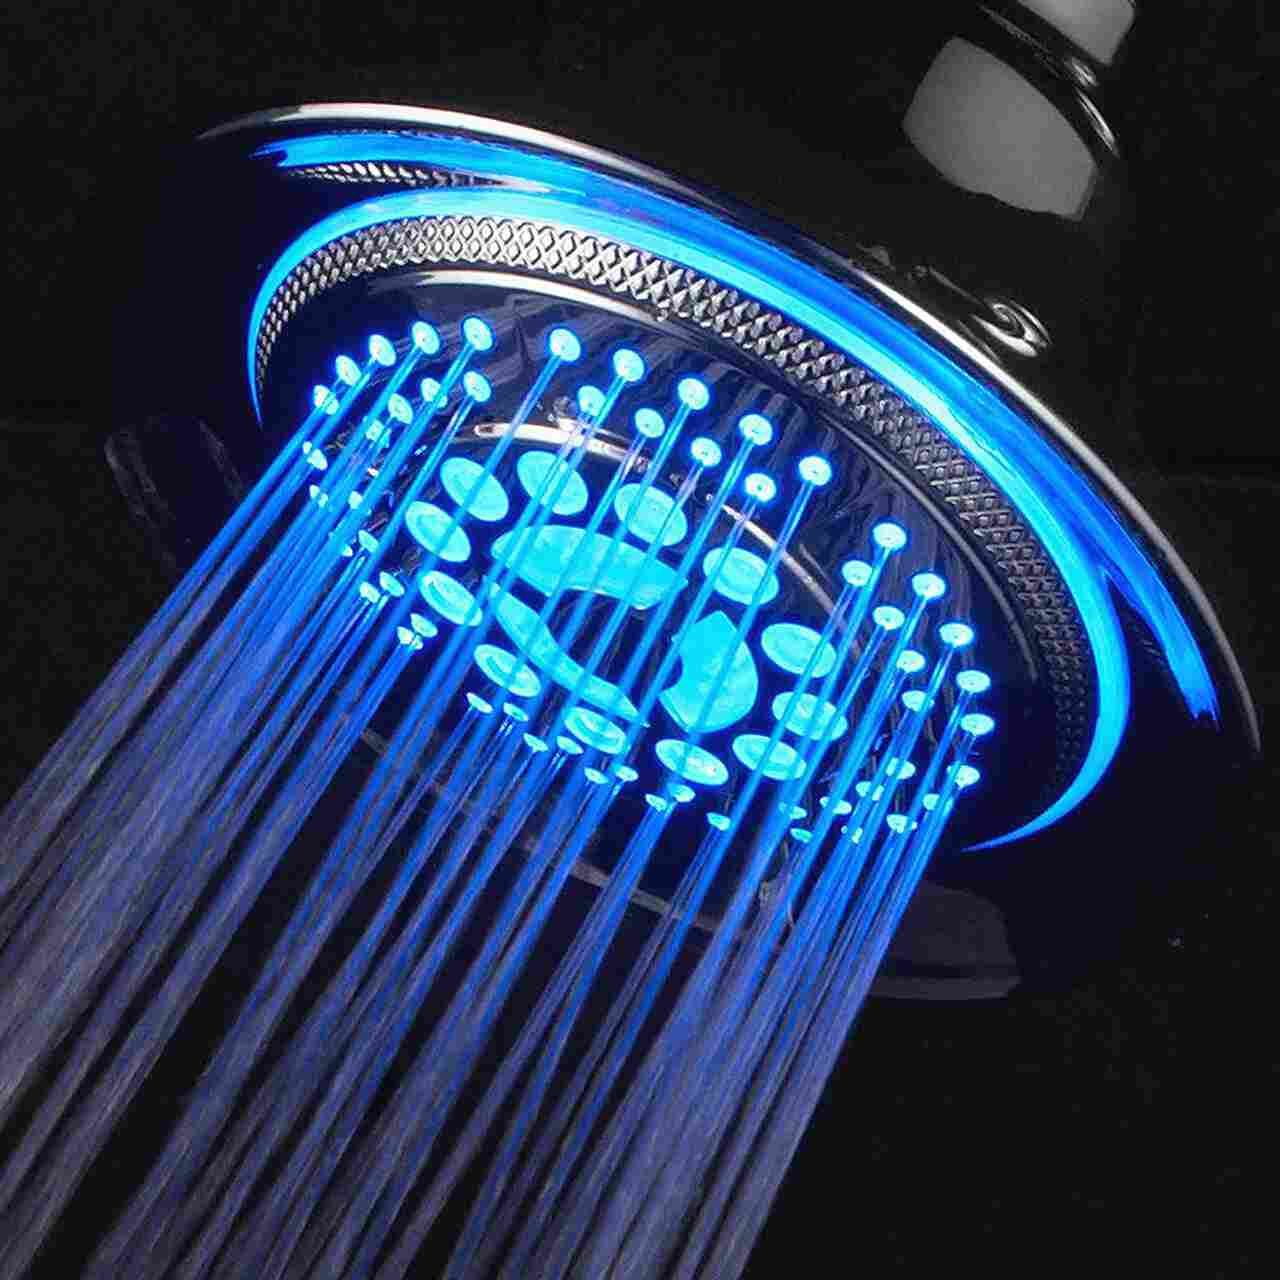 50 Ideas For Shower Showers Stylish And Practical Homedecor Led Shower Head Shower Heads Color Changing Led